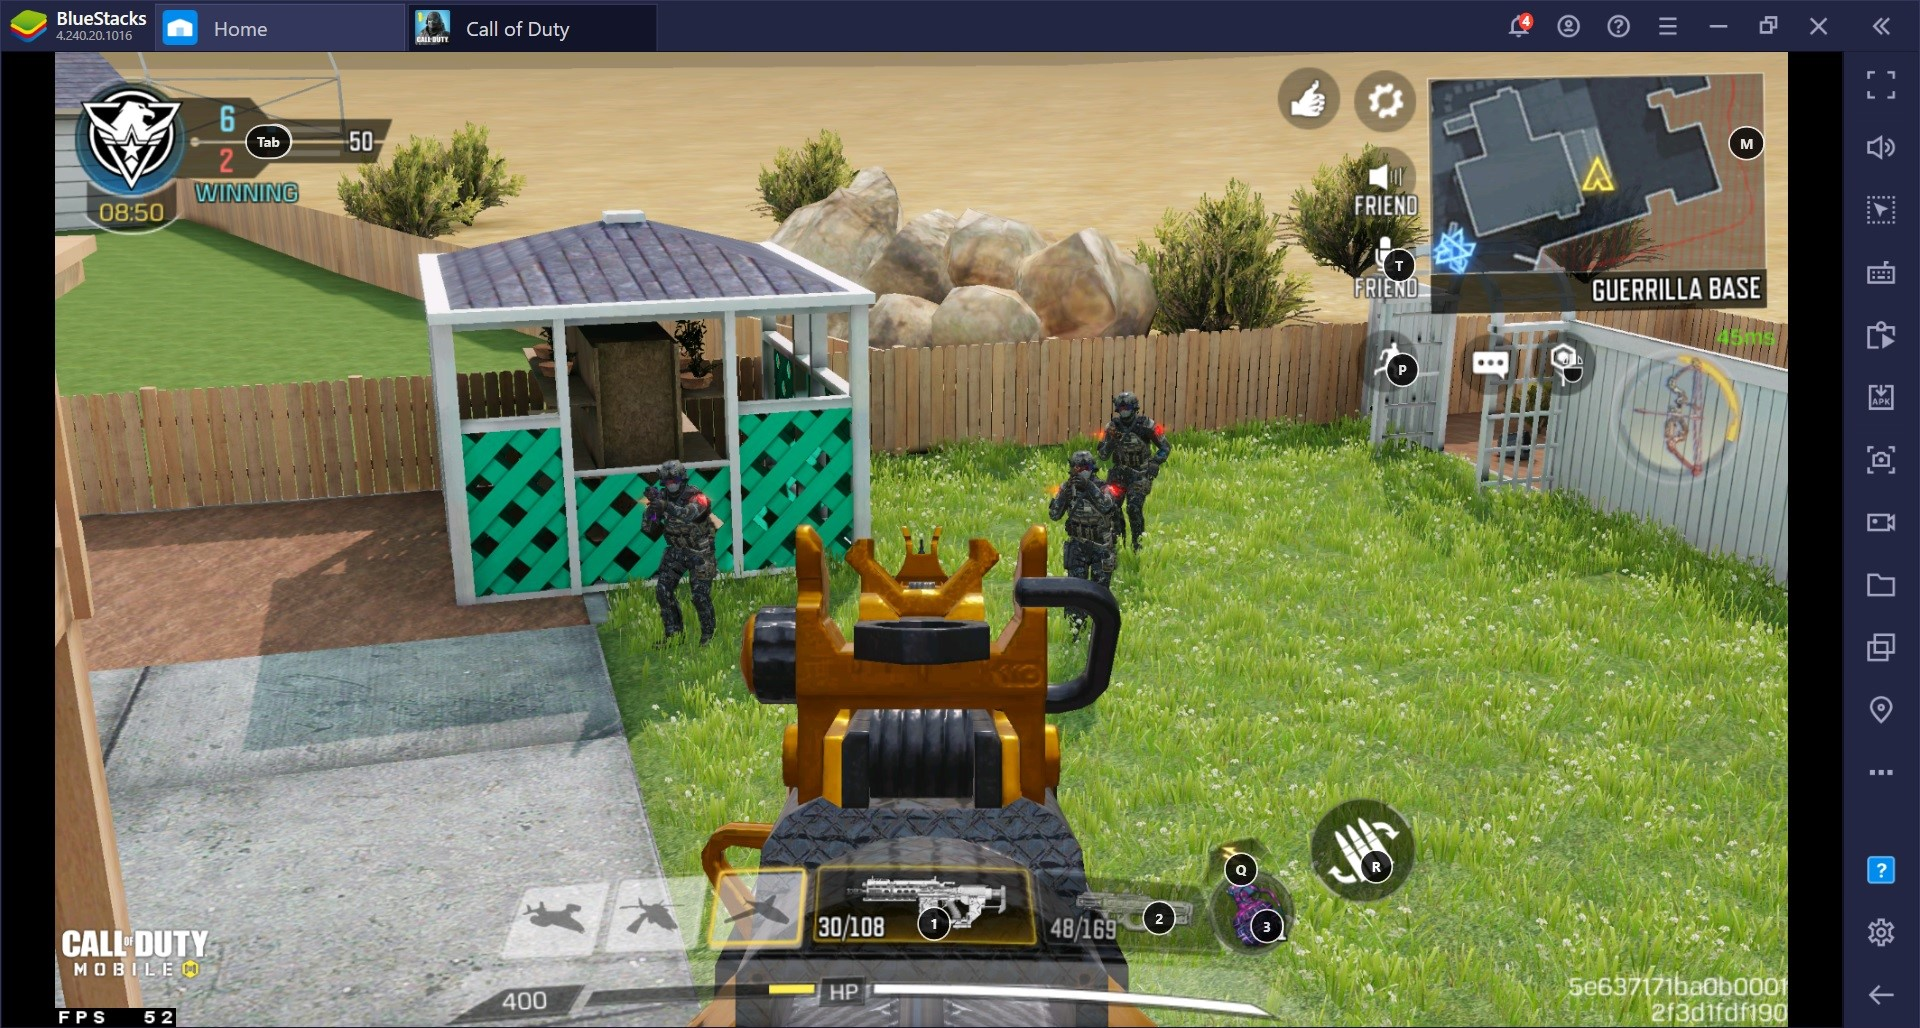 Call of Duty: Mobile Movement Guide, Learn How Peeking can Change the Game